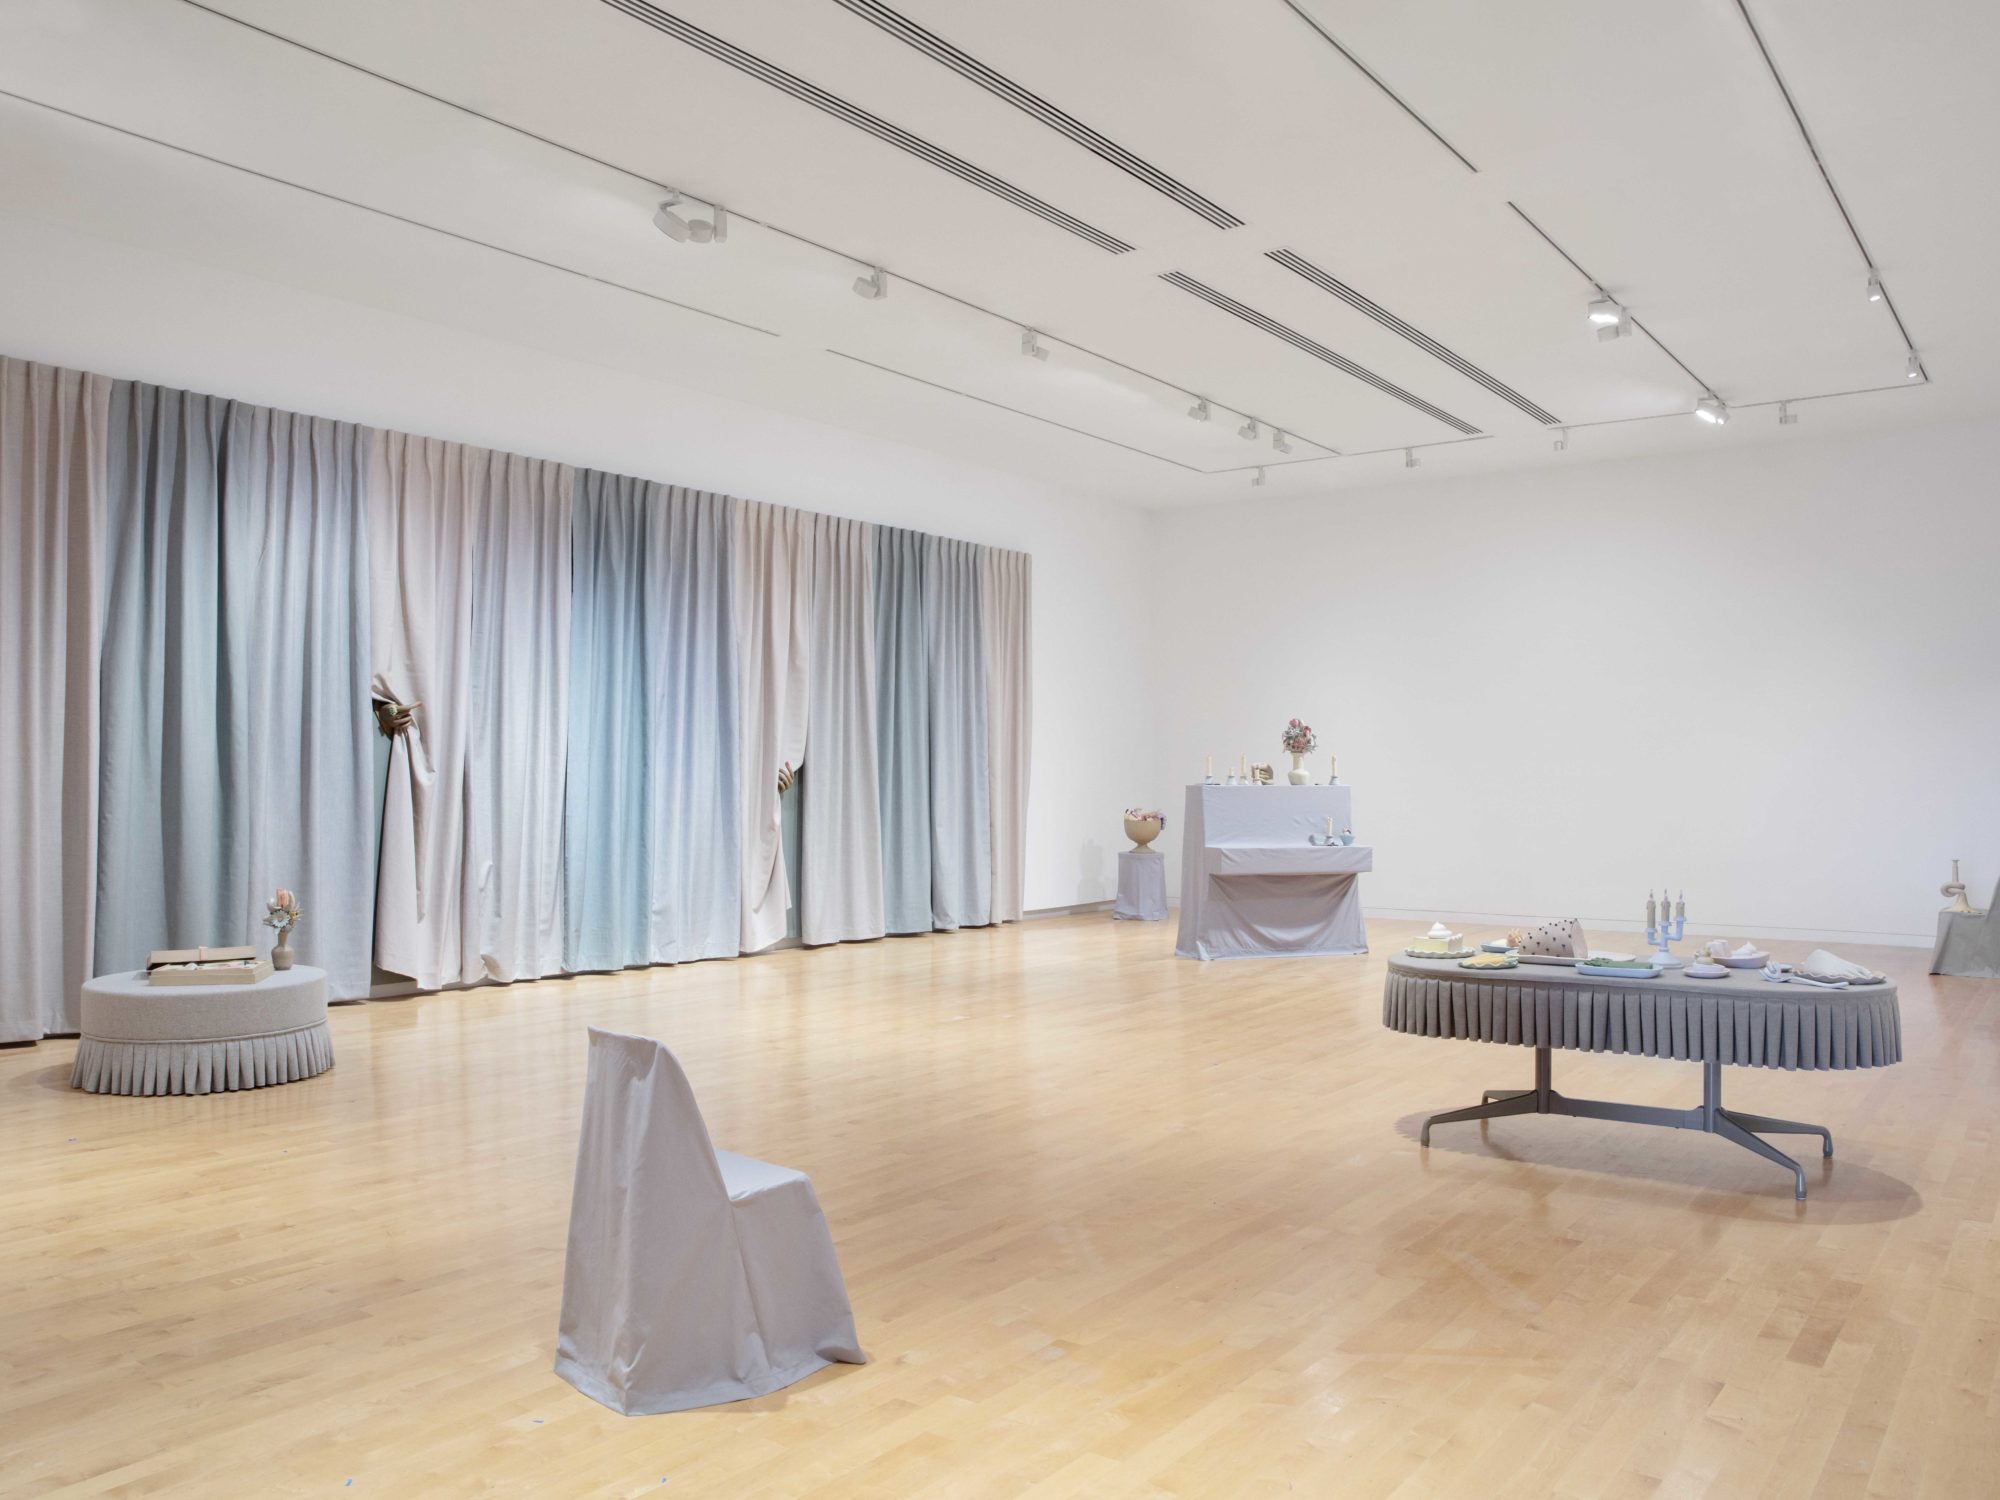 Overall view with several gray slipcovered furnishings with small surrealist clay objects and a large-scale multi-colored curtain installation to the left.